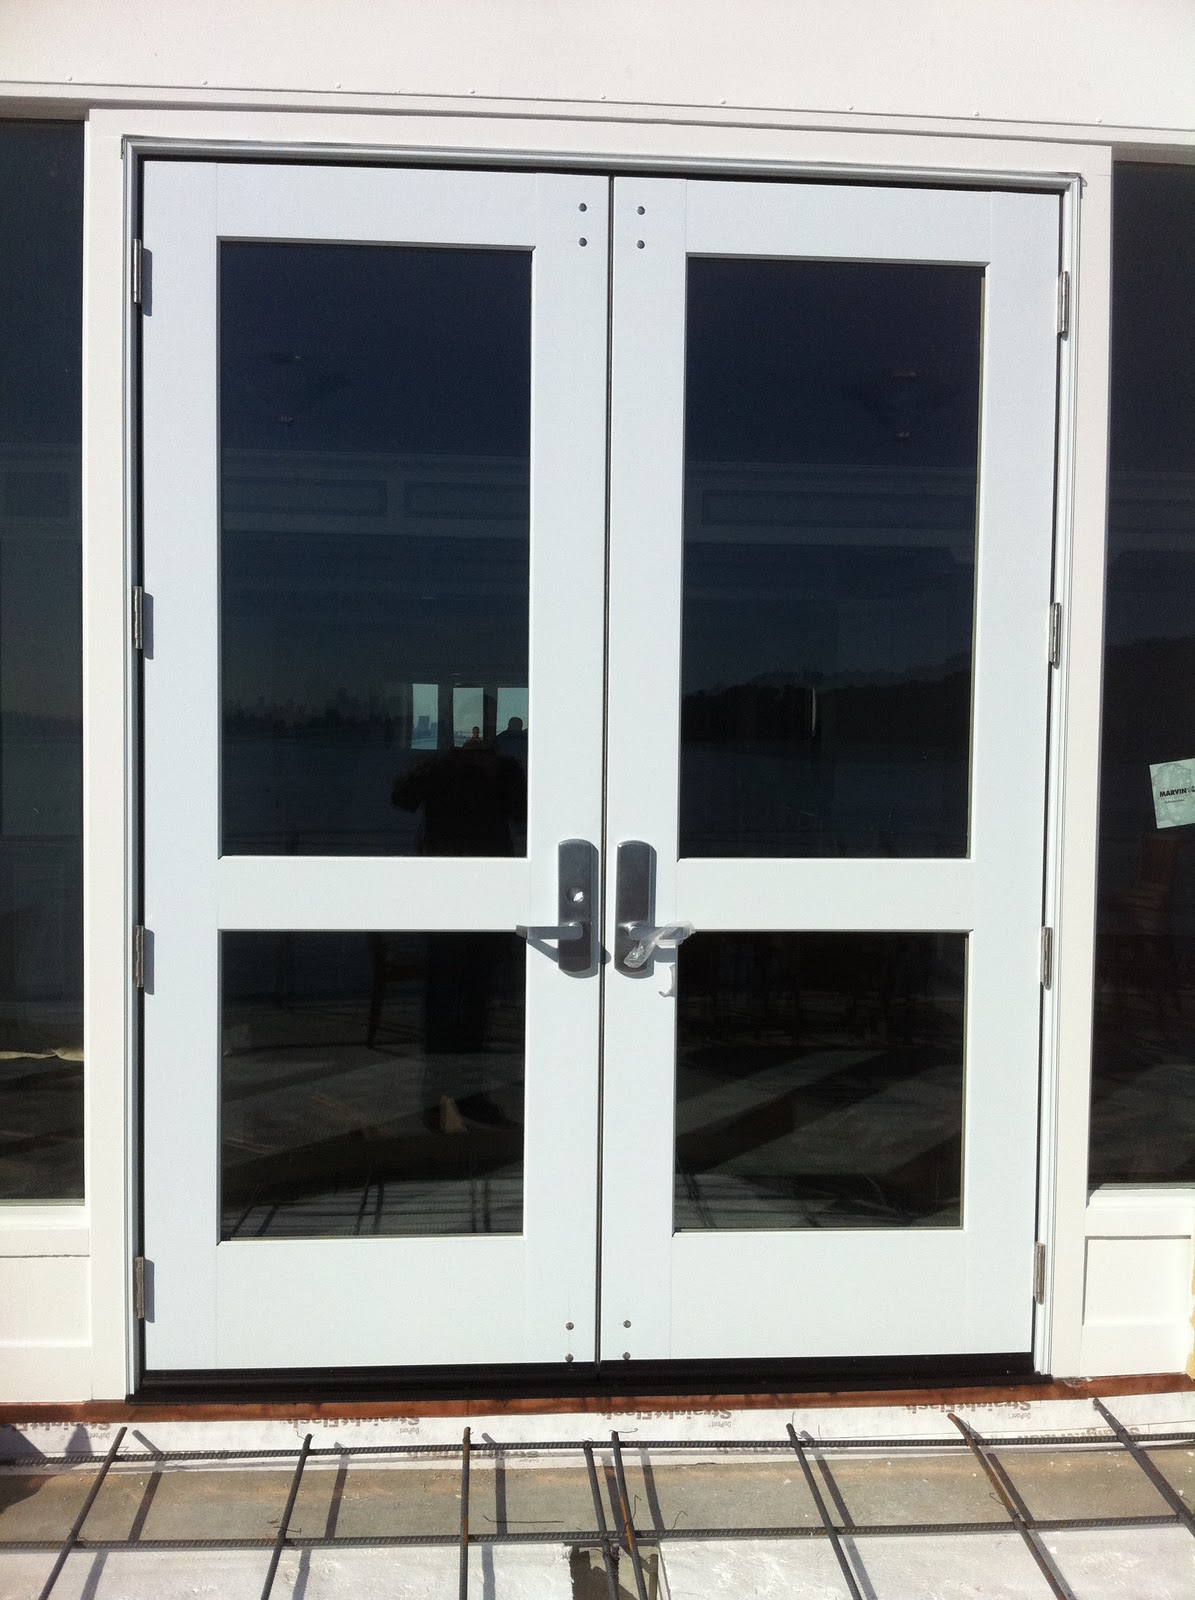 Marvin commercial door installation with von duprin hardware for Commercial exterior doors